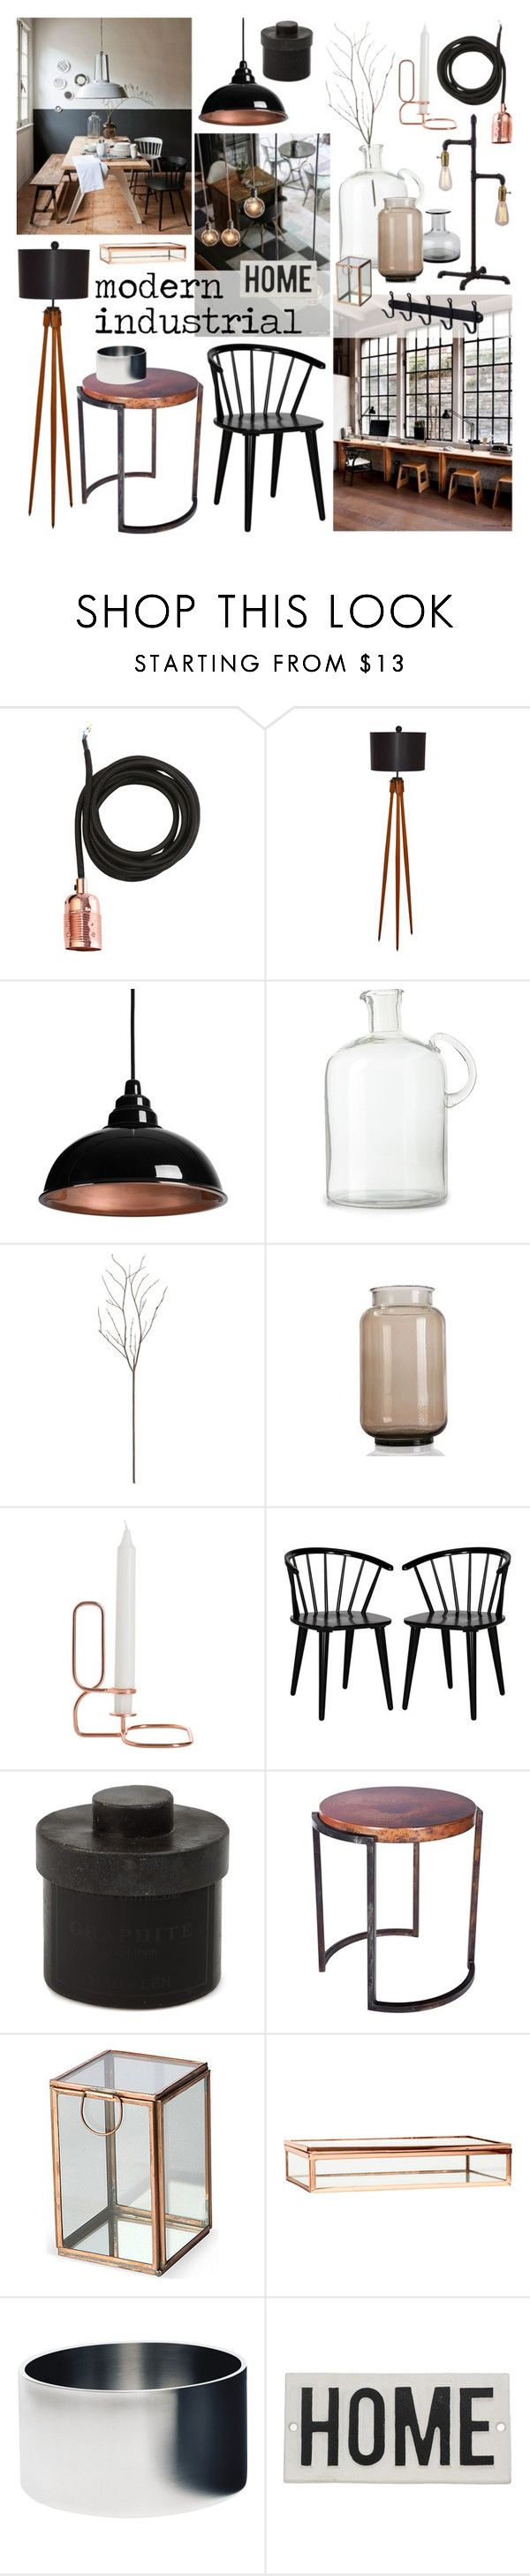 """Modern Industrial"" by ladomna on Polyvore featuring interior, interiors, interior design, home, home decor, interior decorating, Frama, Crate and Barrel, HAY and Dot & Bo"